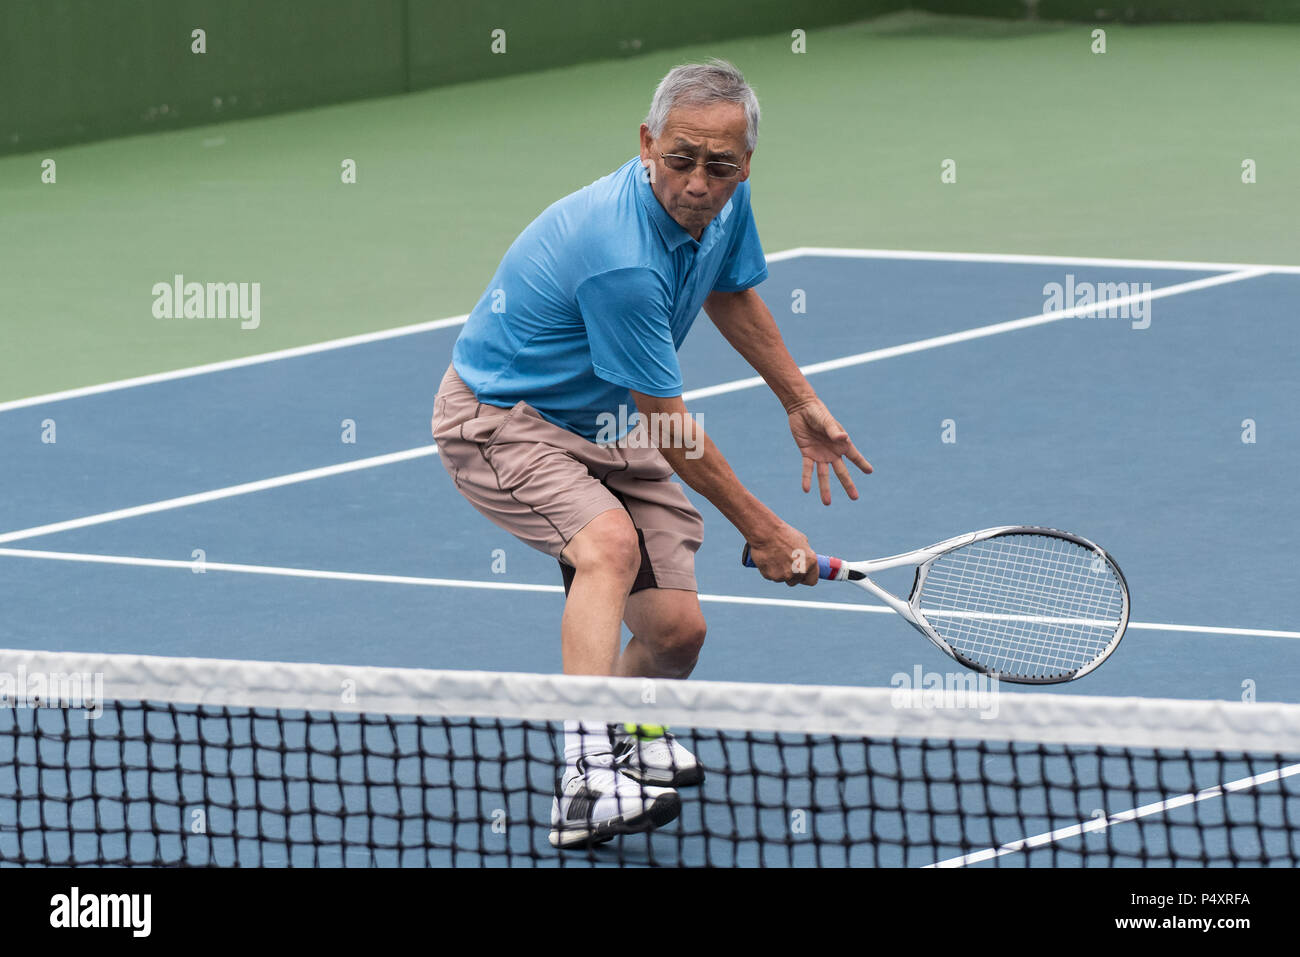 Healthy Chinese elderly man showing flexibility while reach for the low tennis backhand volley. - Stock Image